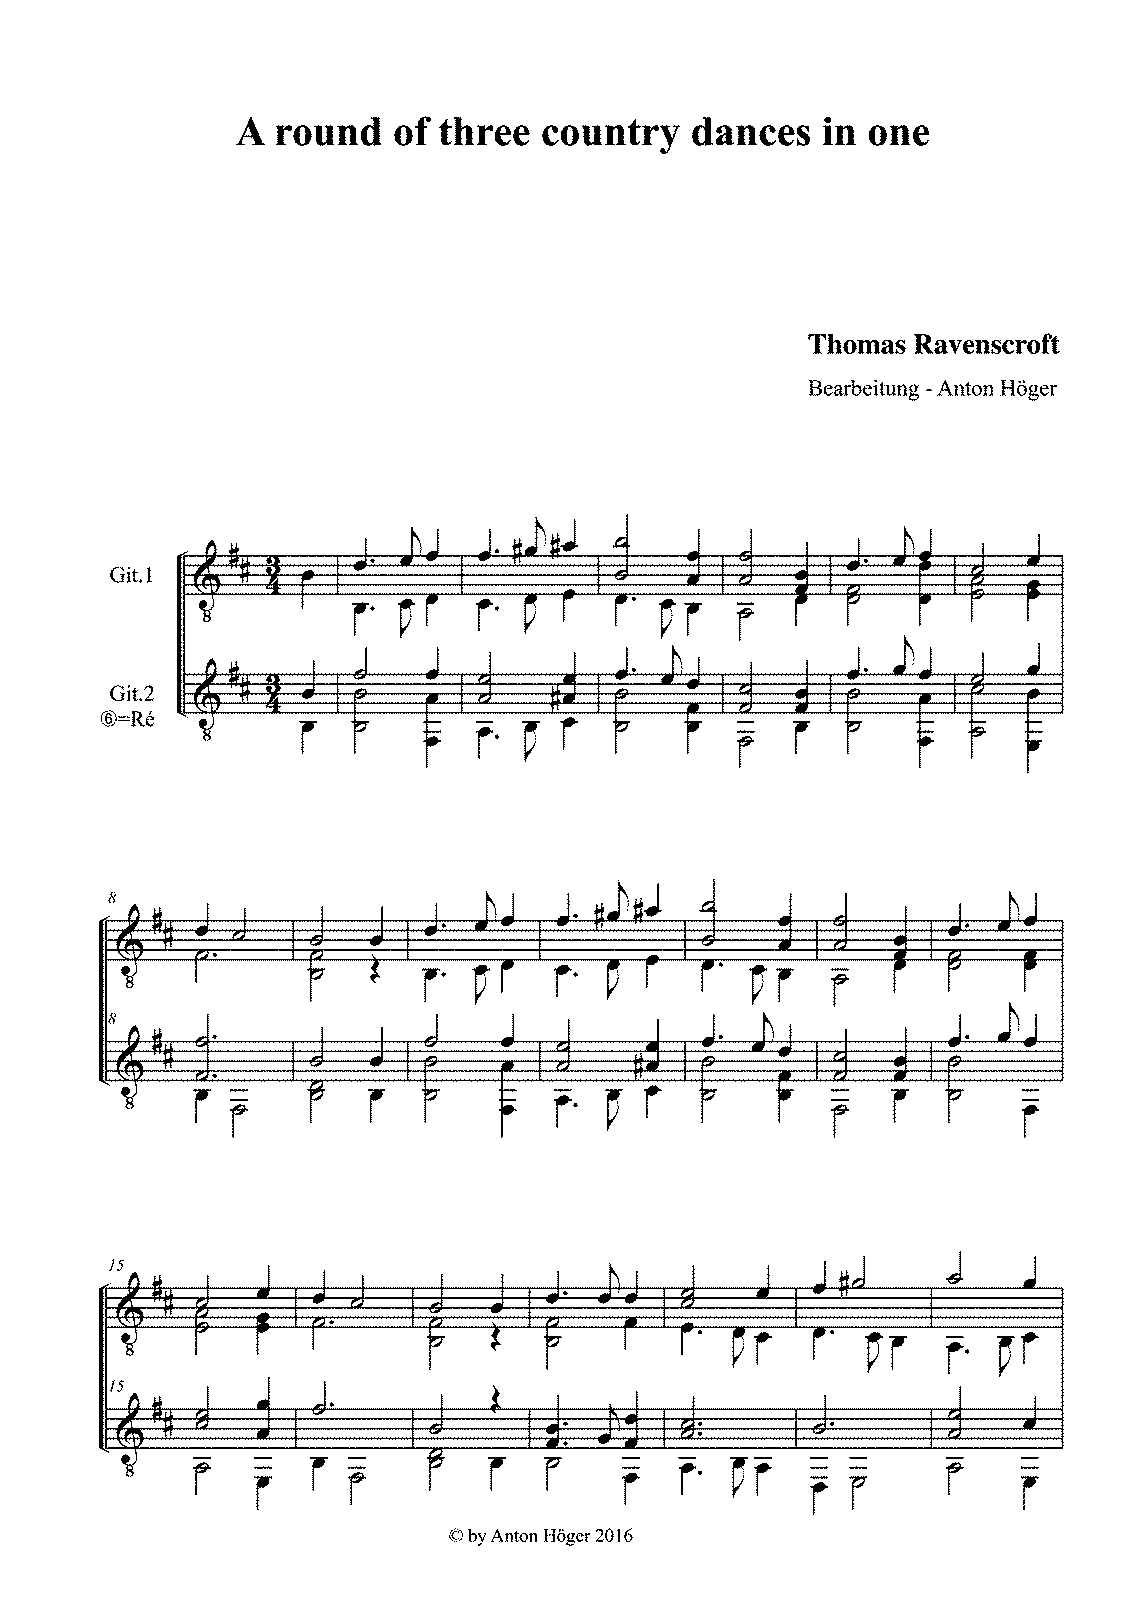 PMLP711537-Ravenscroft, Thomas - A round of three country dances in one (Git).pdf